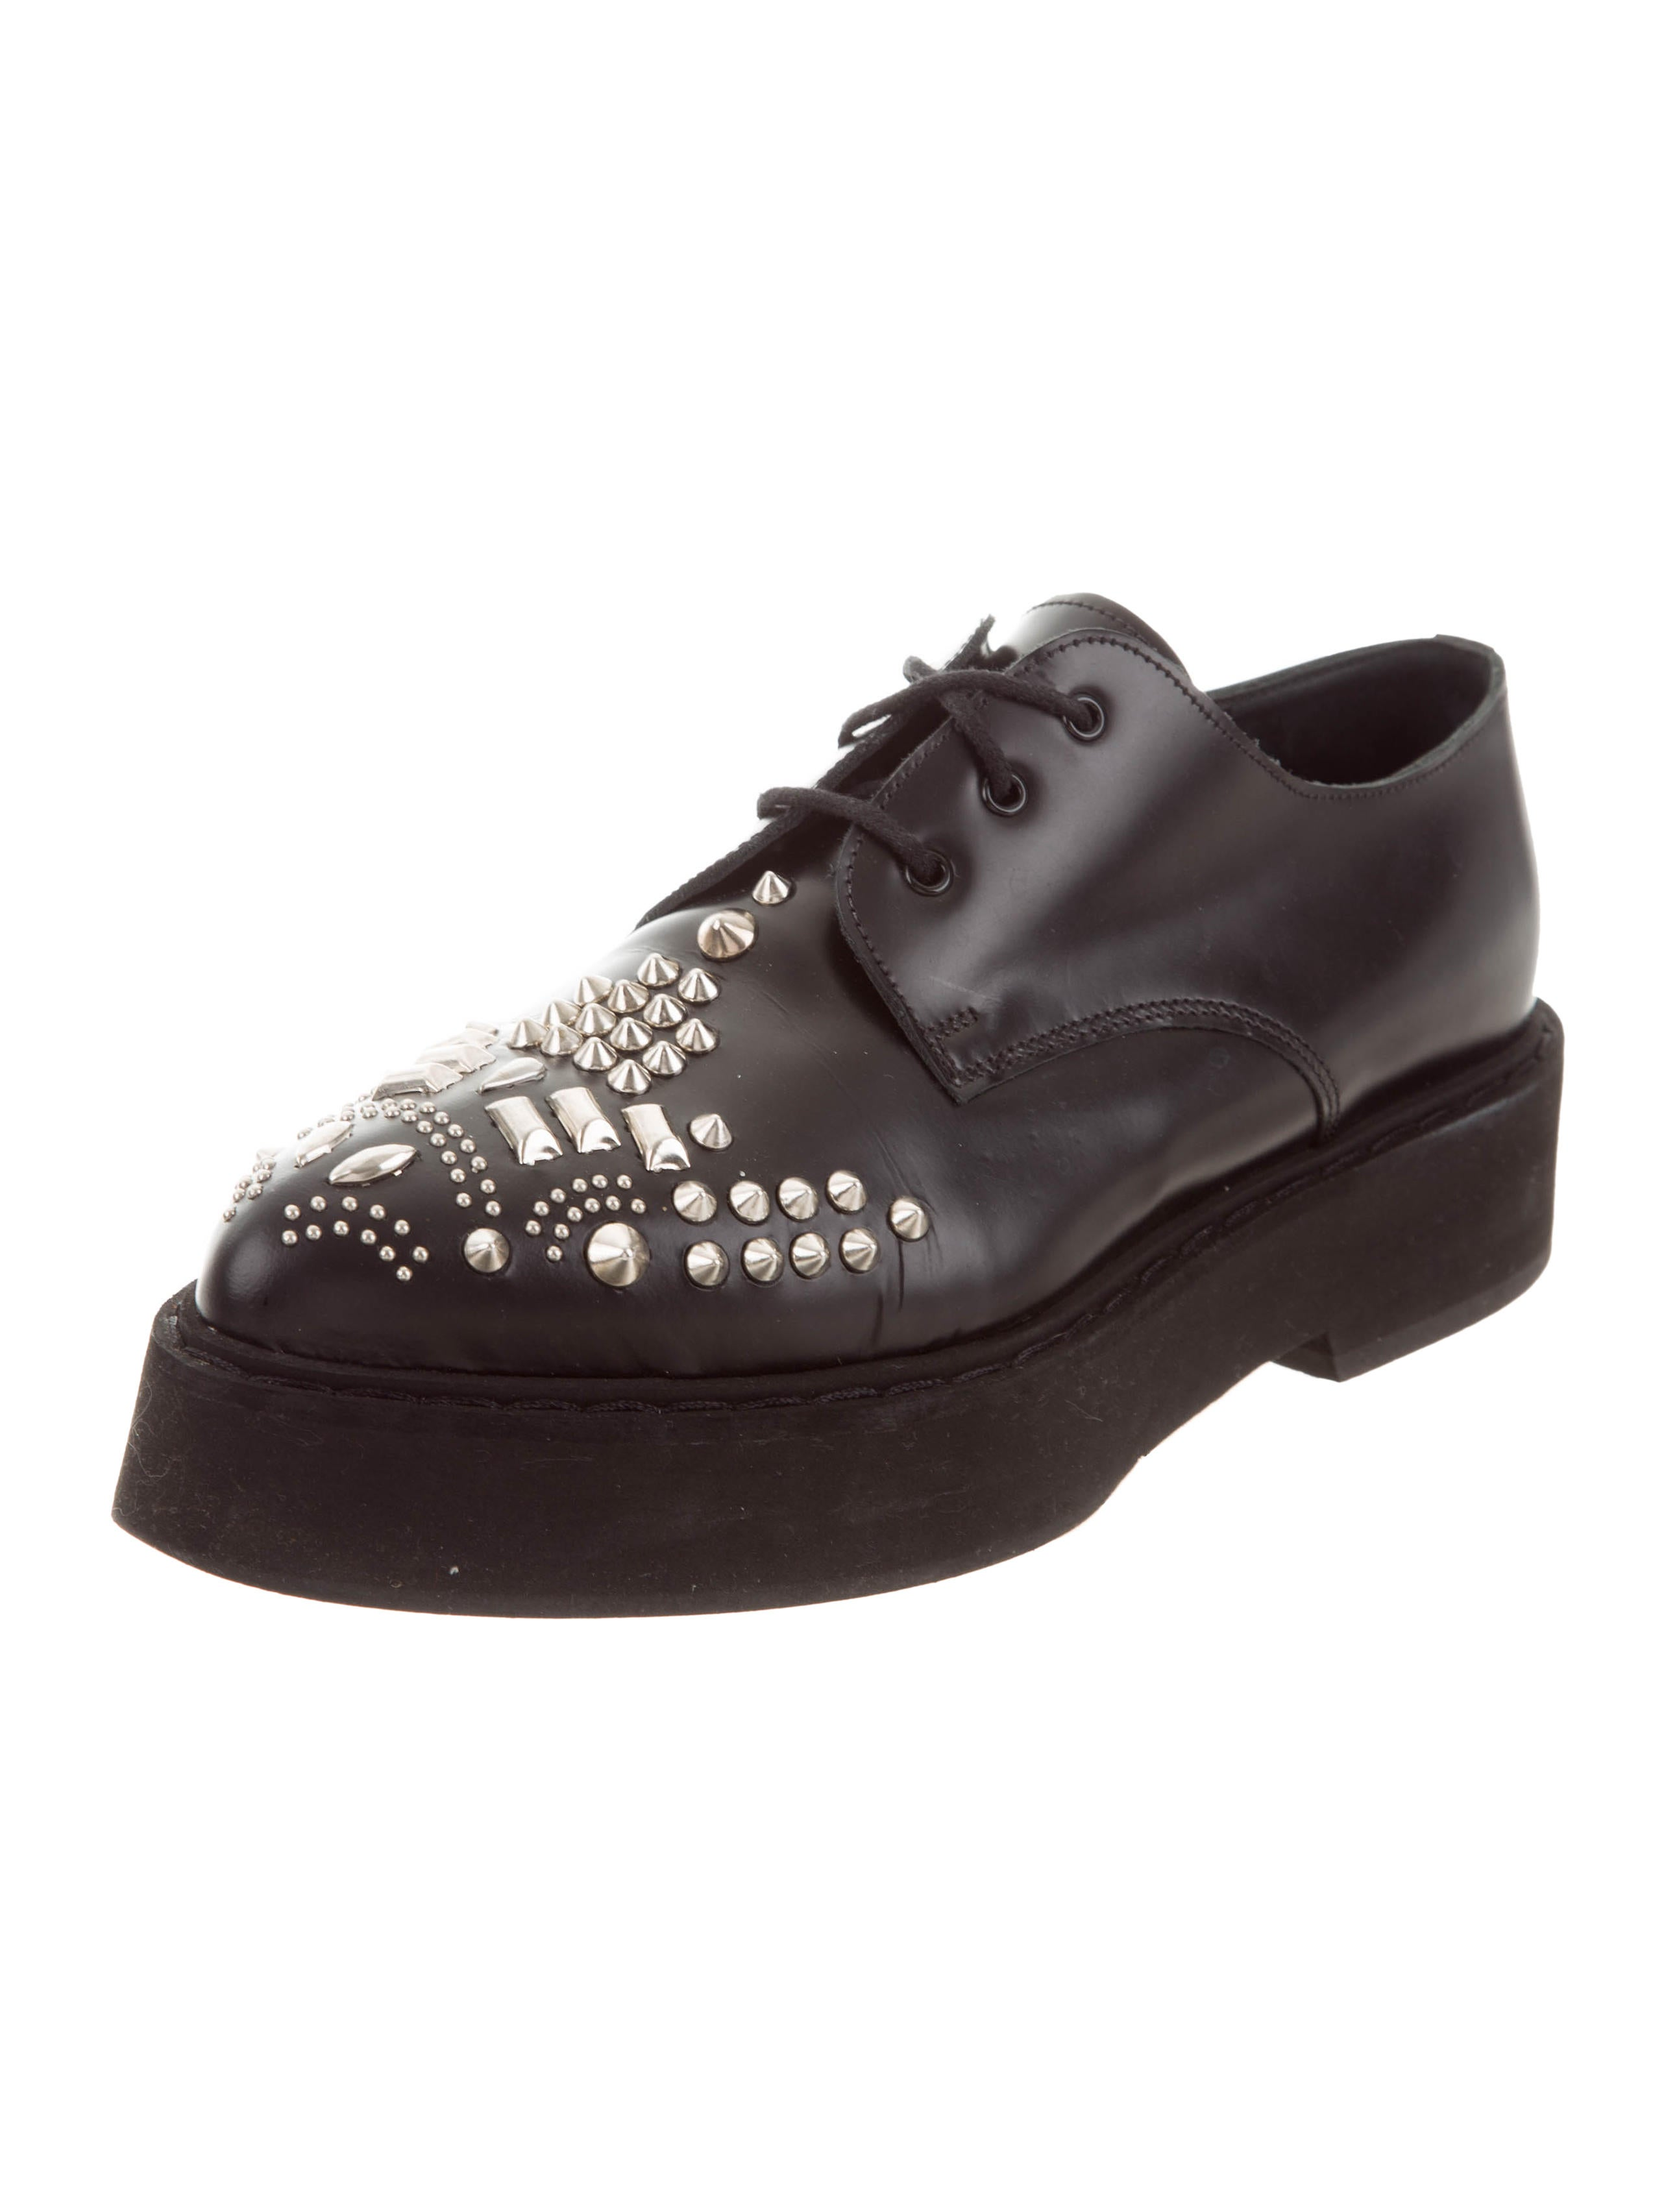 Alexander McQueen Embellished Flatform Oxfords sale choice clearance store online gtR8tE3akO